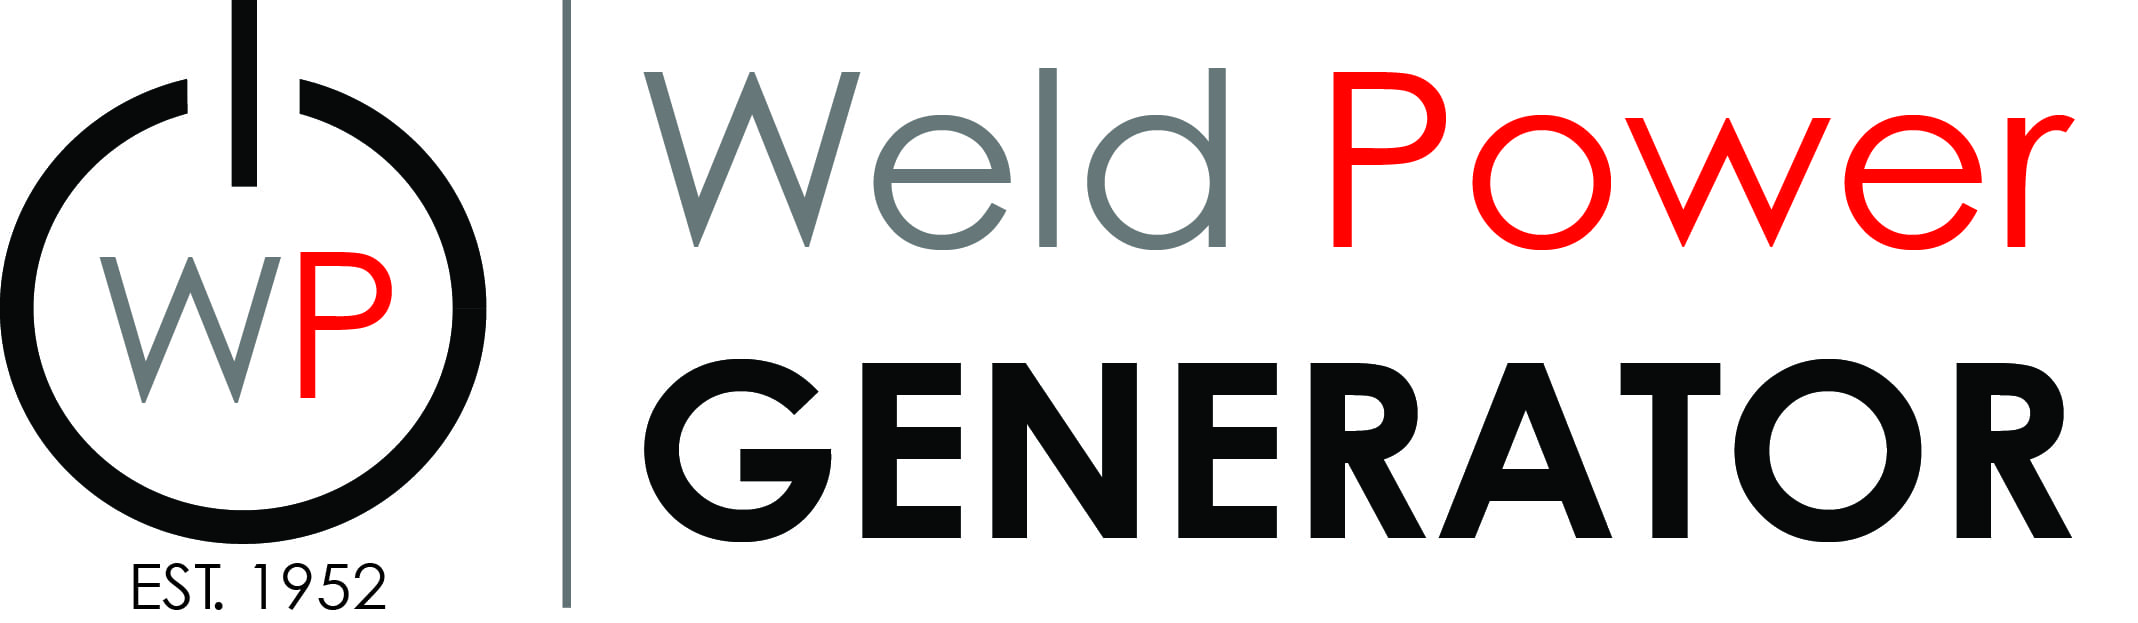 Weld Power Generator